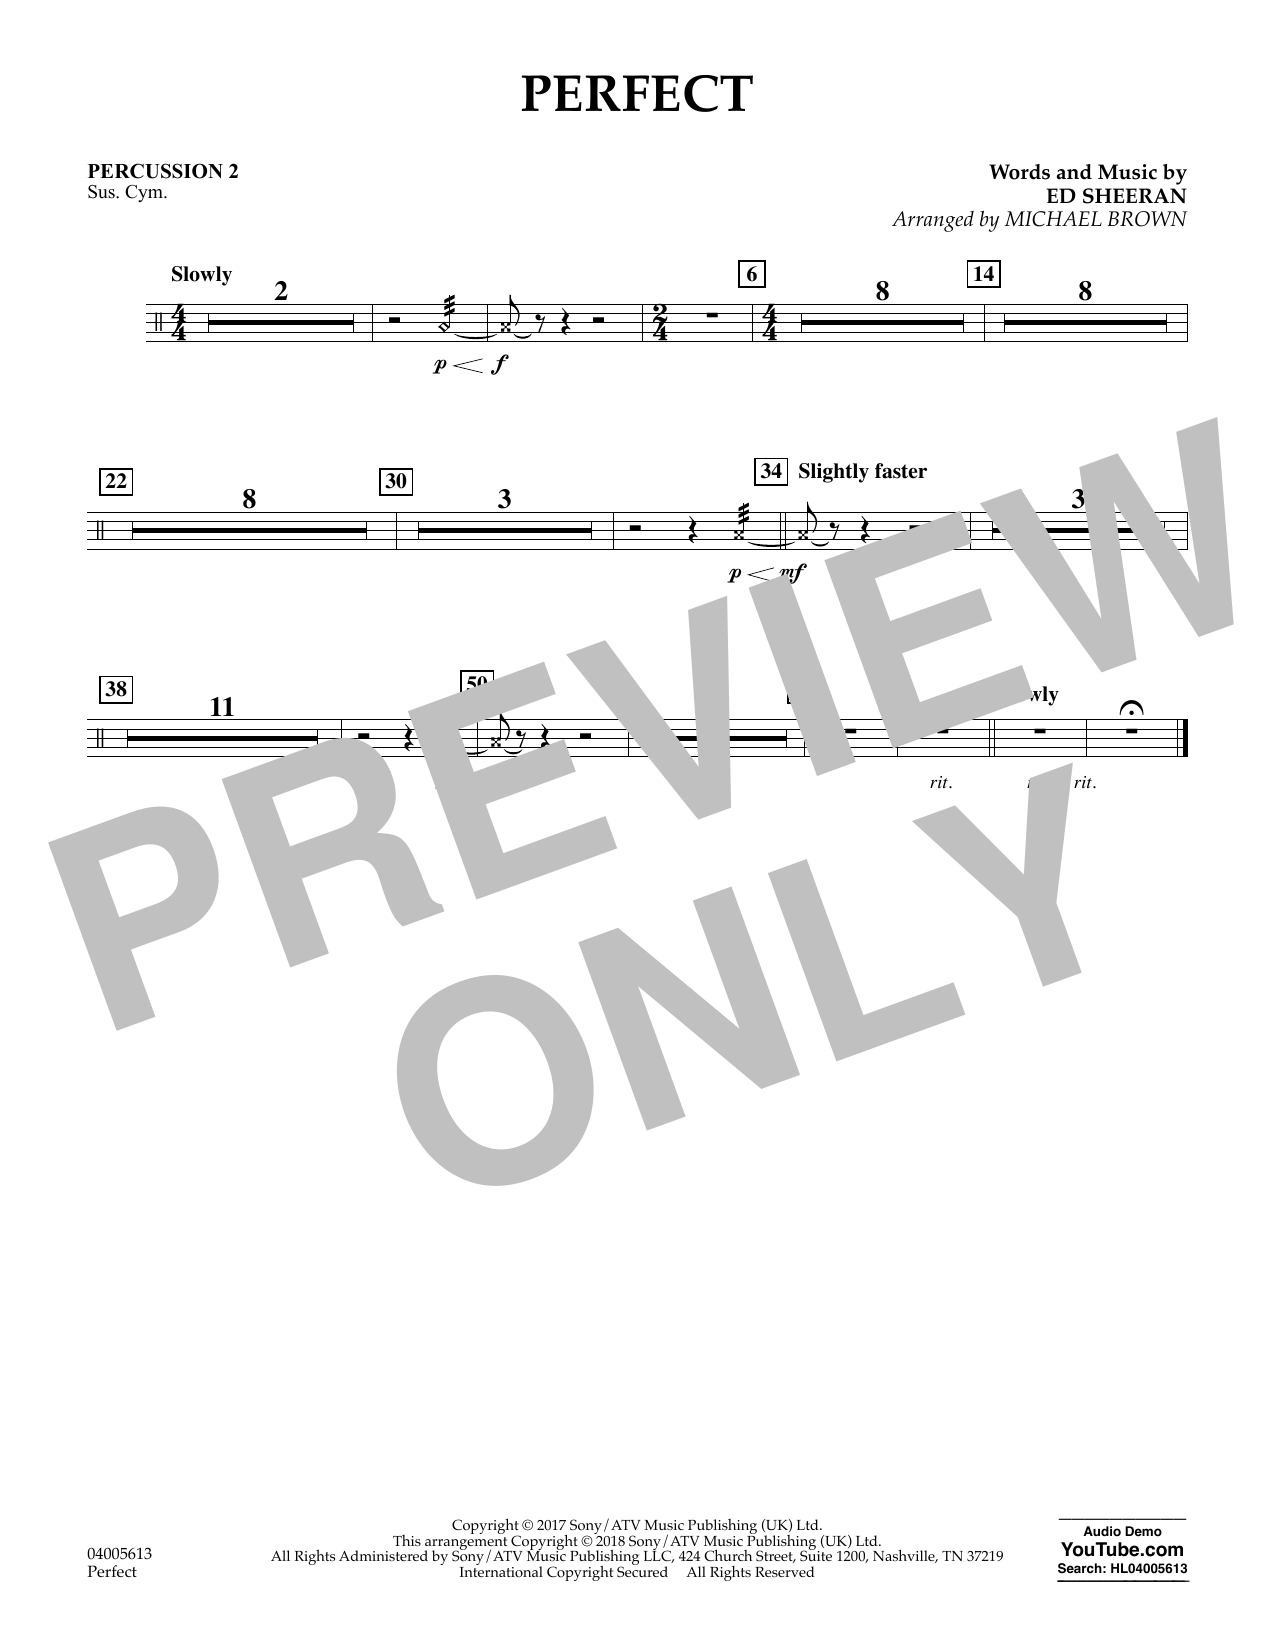 Perfect (arr. Michael Brown) - Percussion 2 (Concert Band)